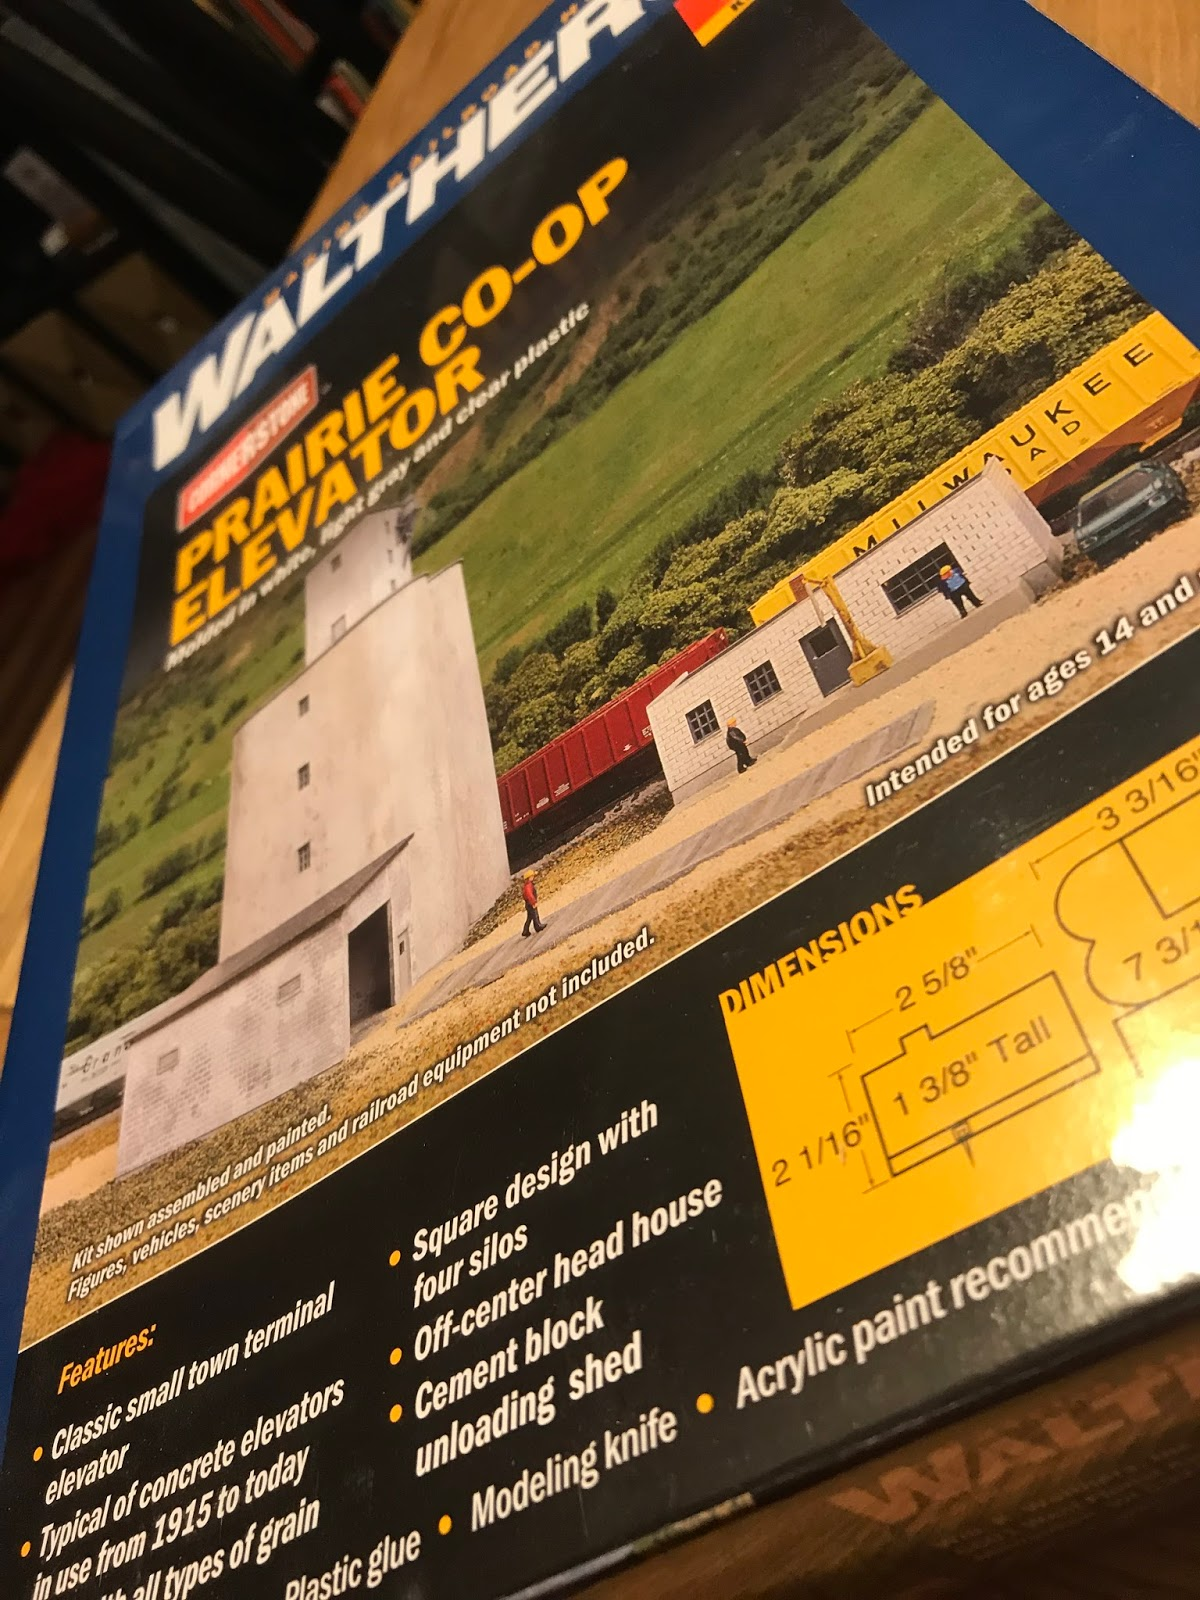 Southern Illinois Rails in N Scale: How Big is your Elevator?